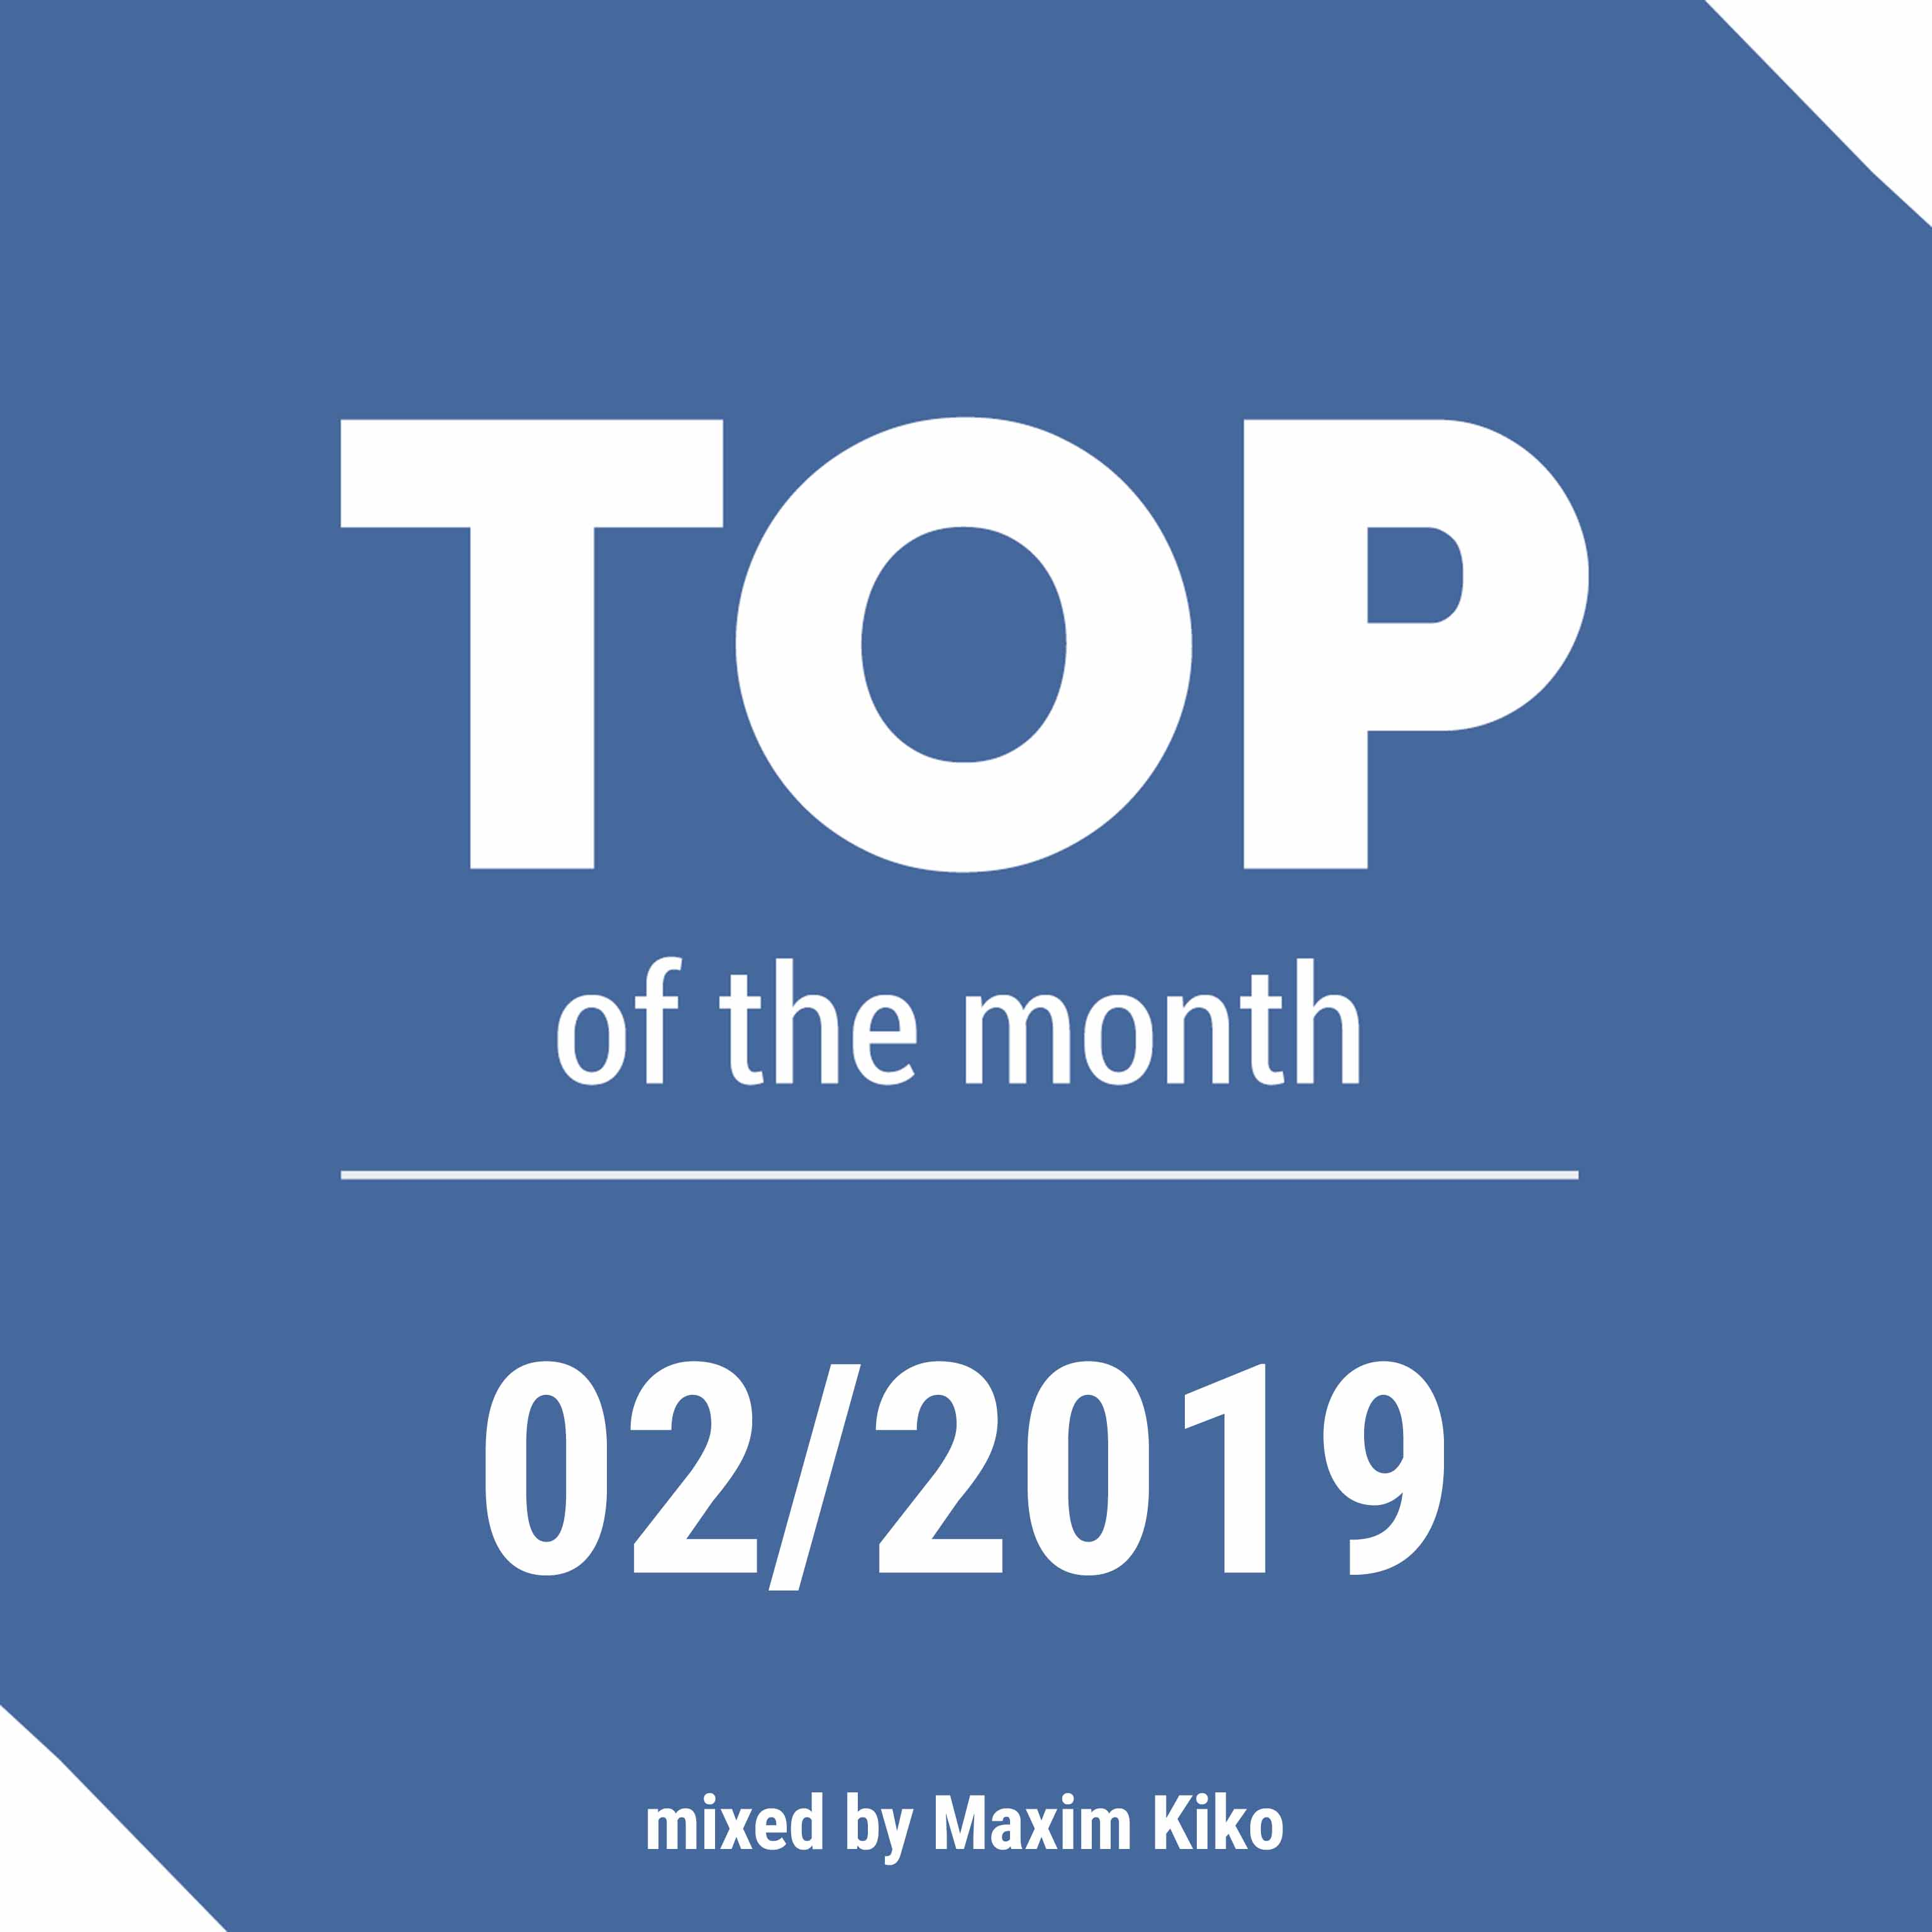 Top 10 of February 2019